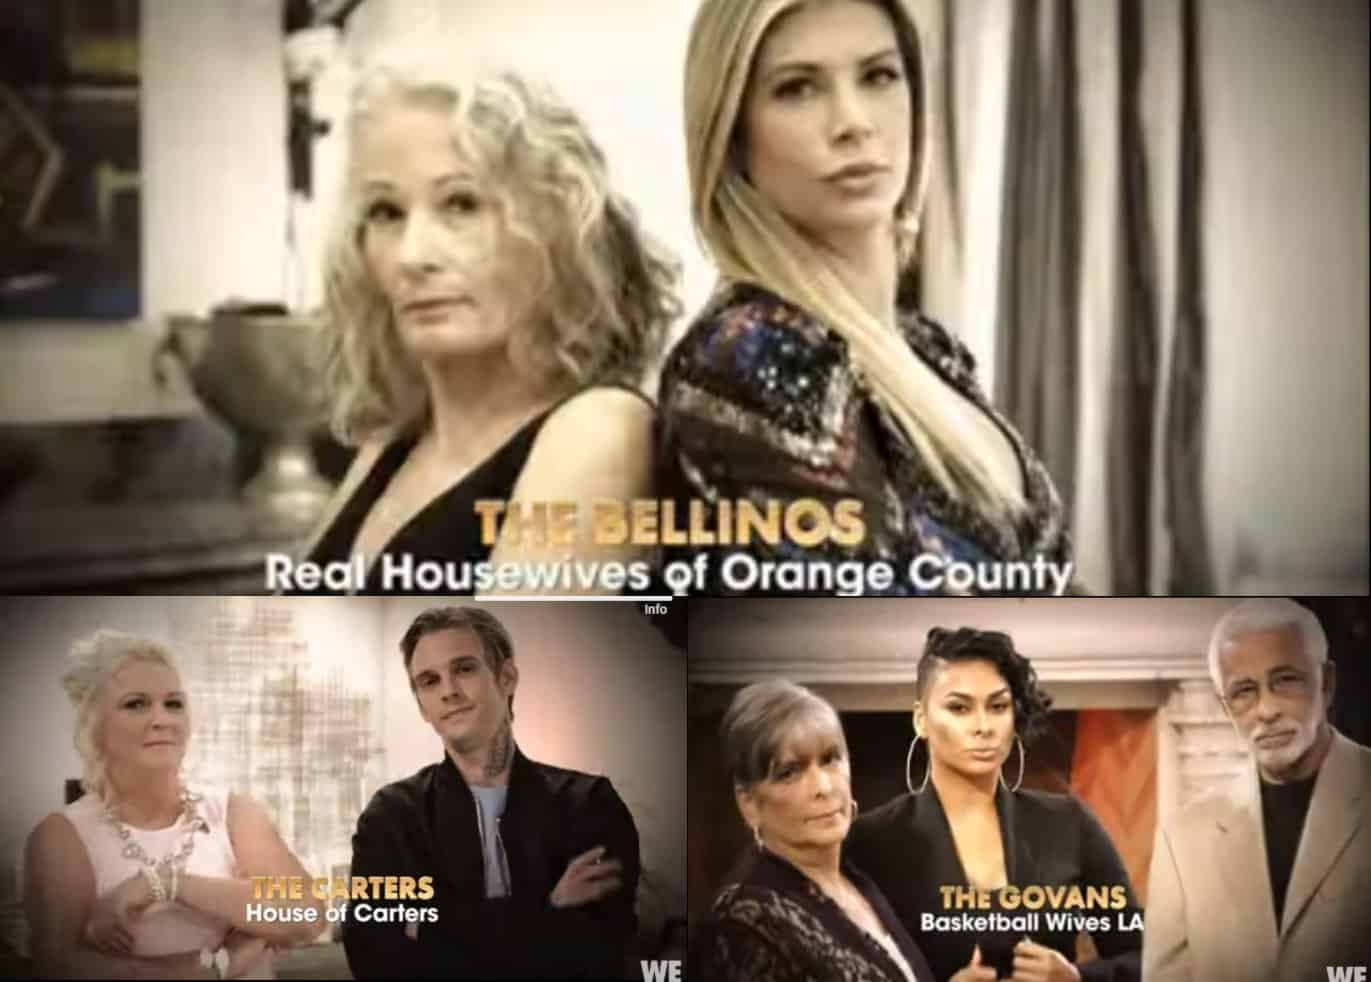 VIDEO: Former RHOC Star Alexis Bellino Joins Marriage Boot Camp: Family Edition With Her Mom, See the Video Trailer!